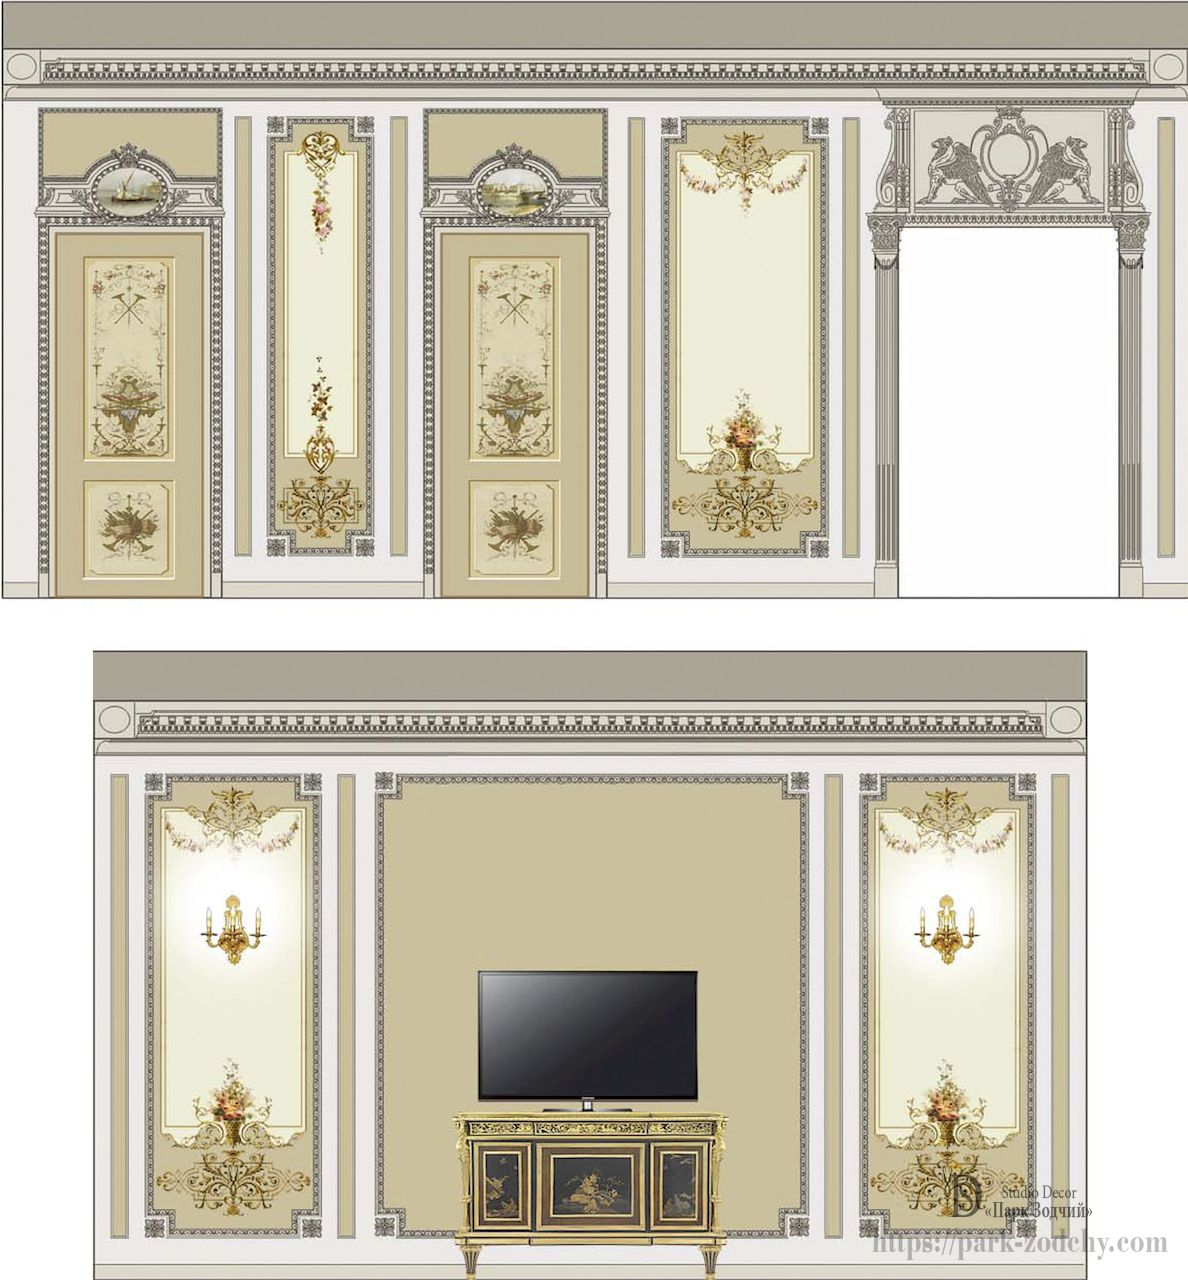 A snippet of the project: exquisite living room decorated with stucco, painted